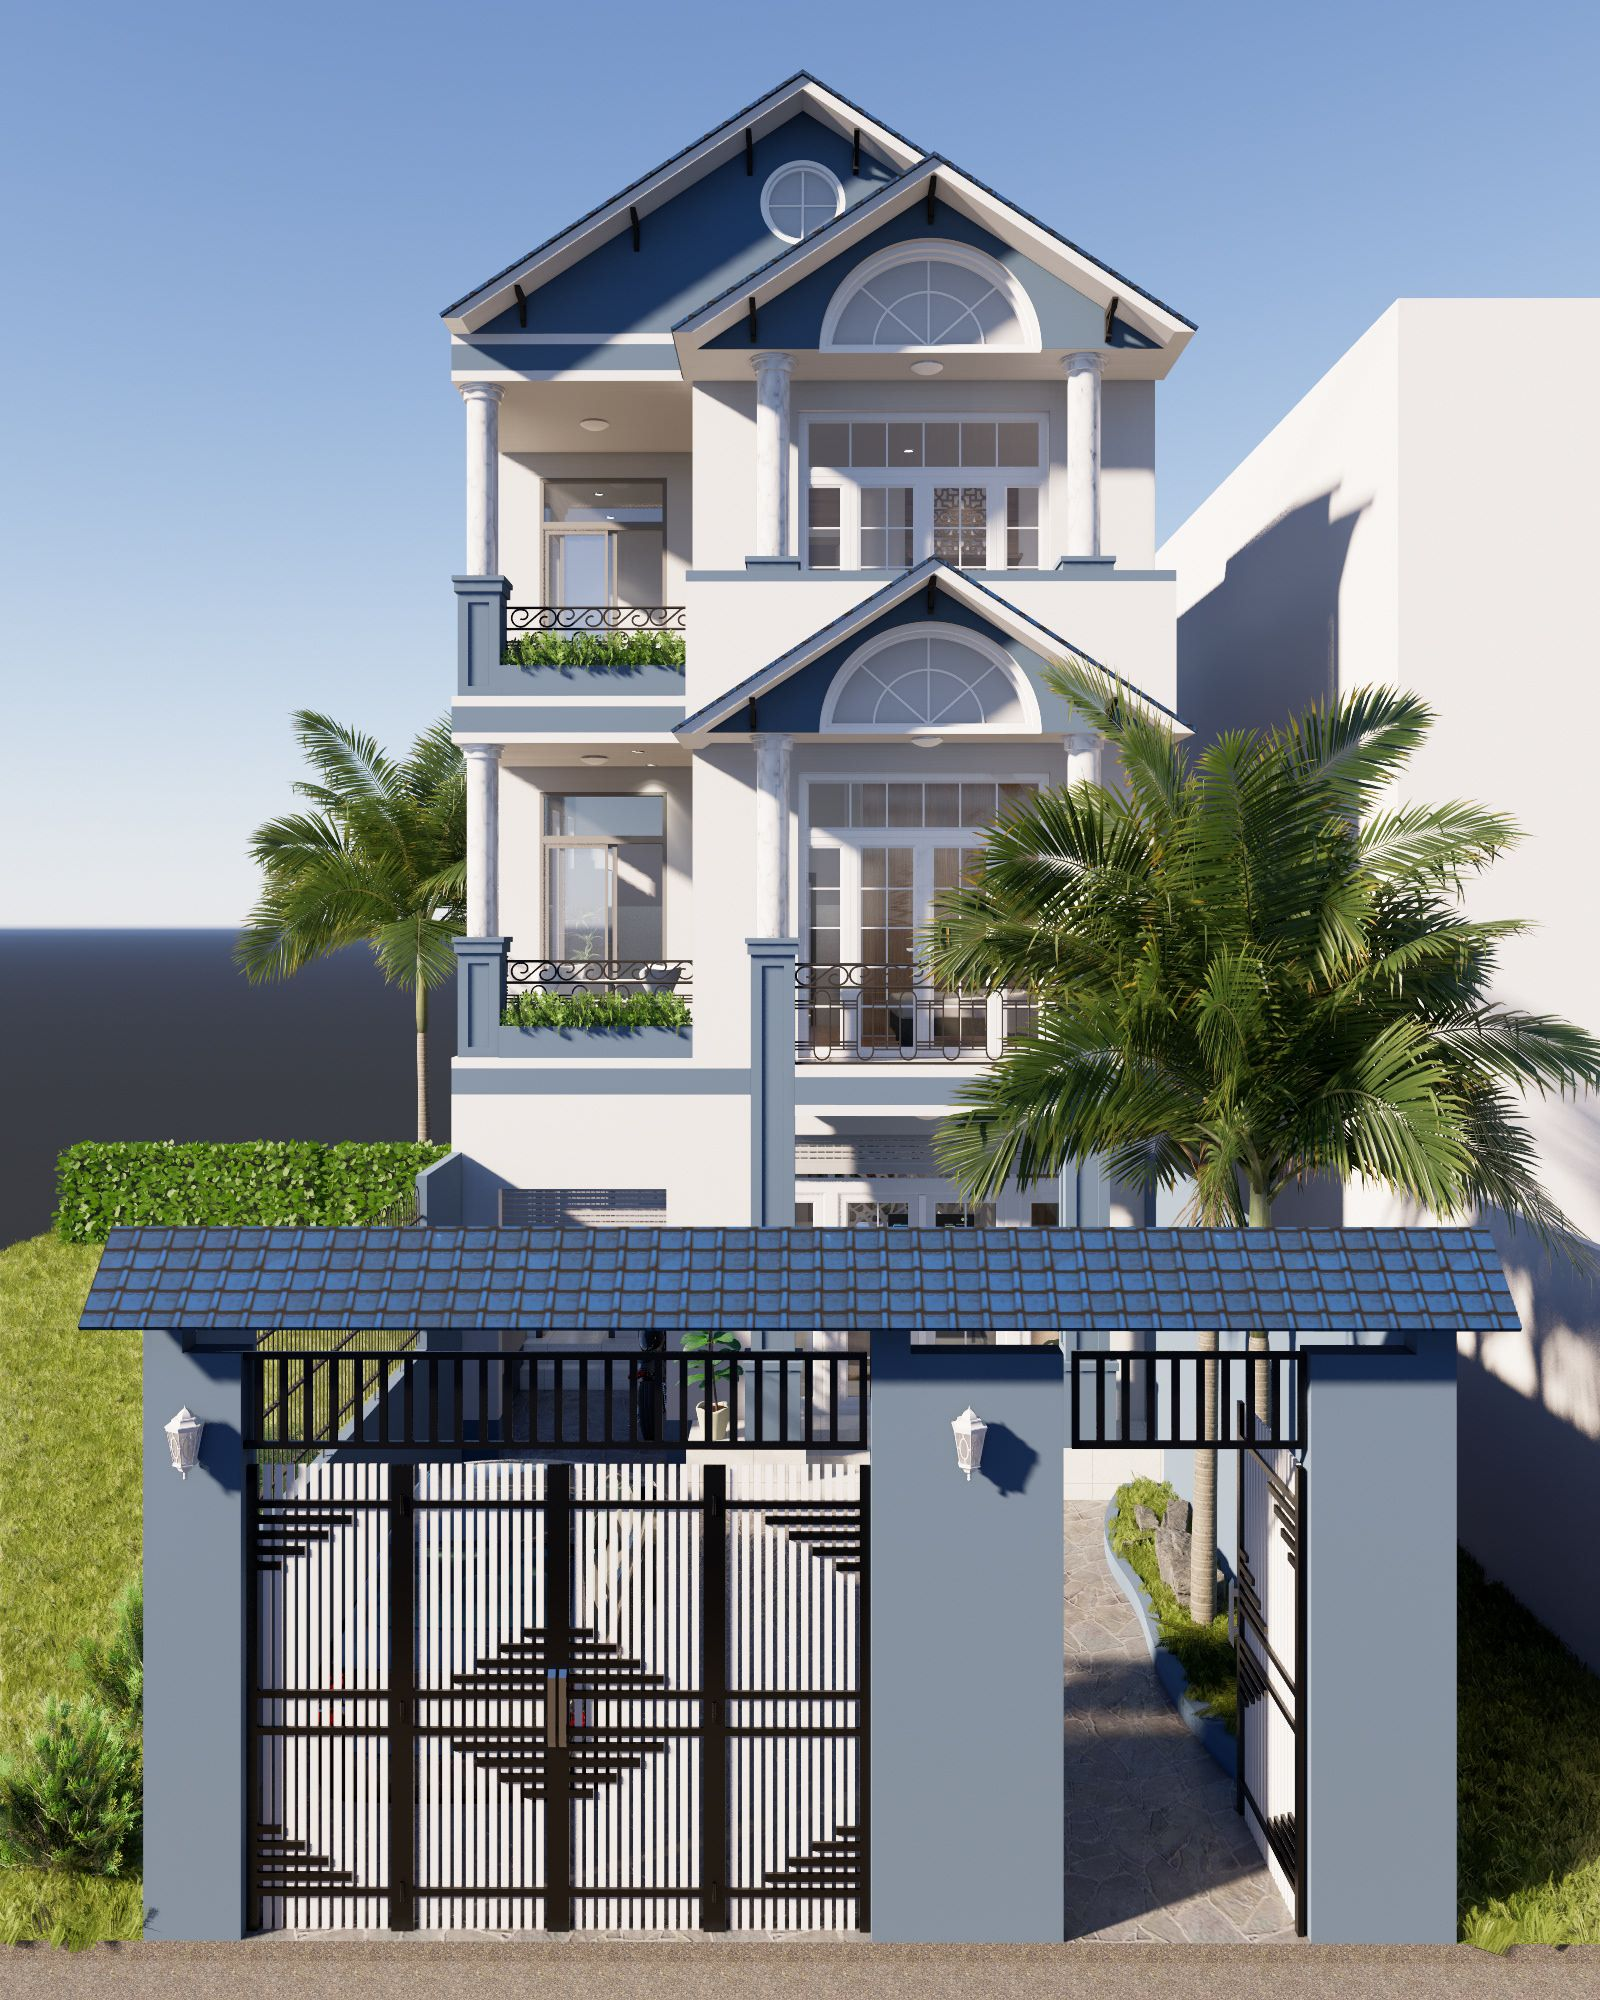 Sketchup Home Design: 2758 Exterior House Scene Sketchup Model By NguyenTruong